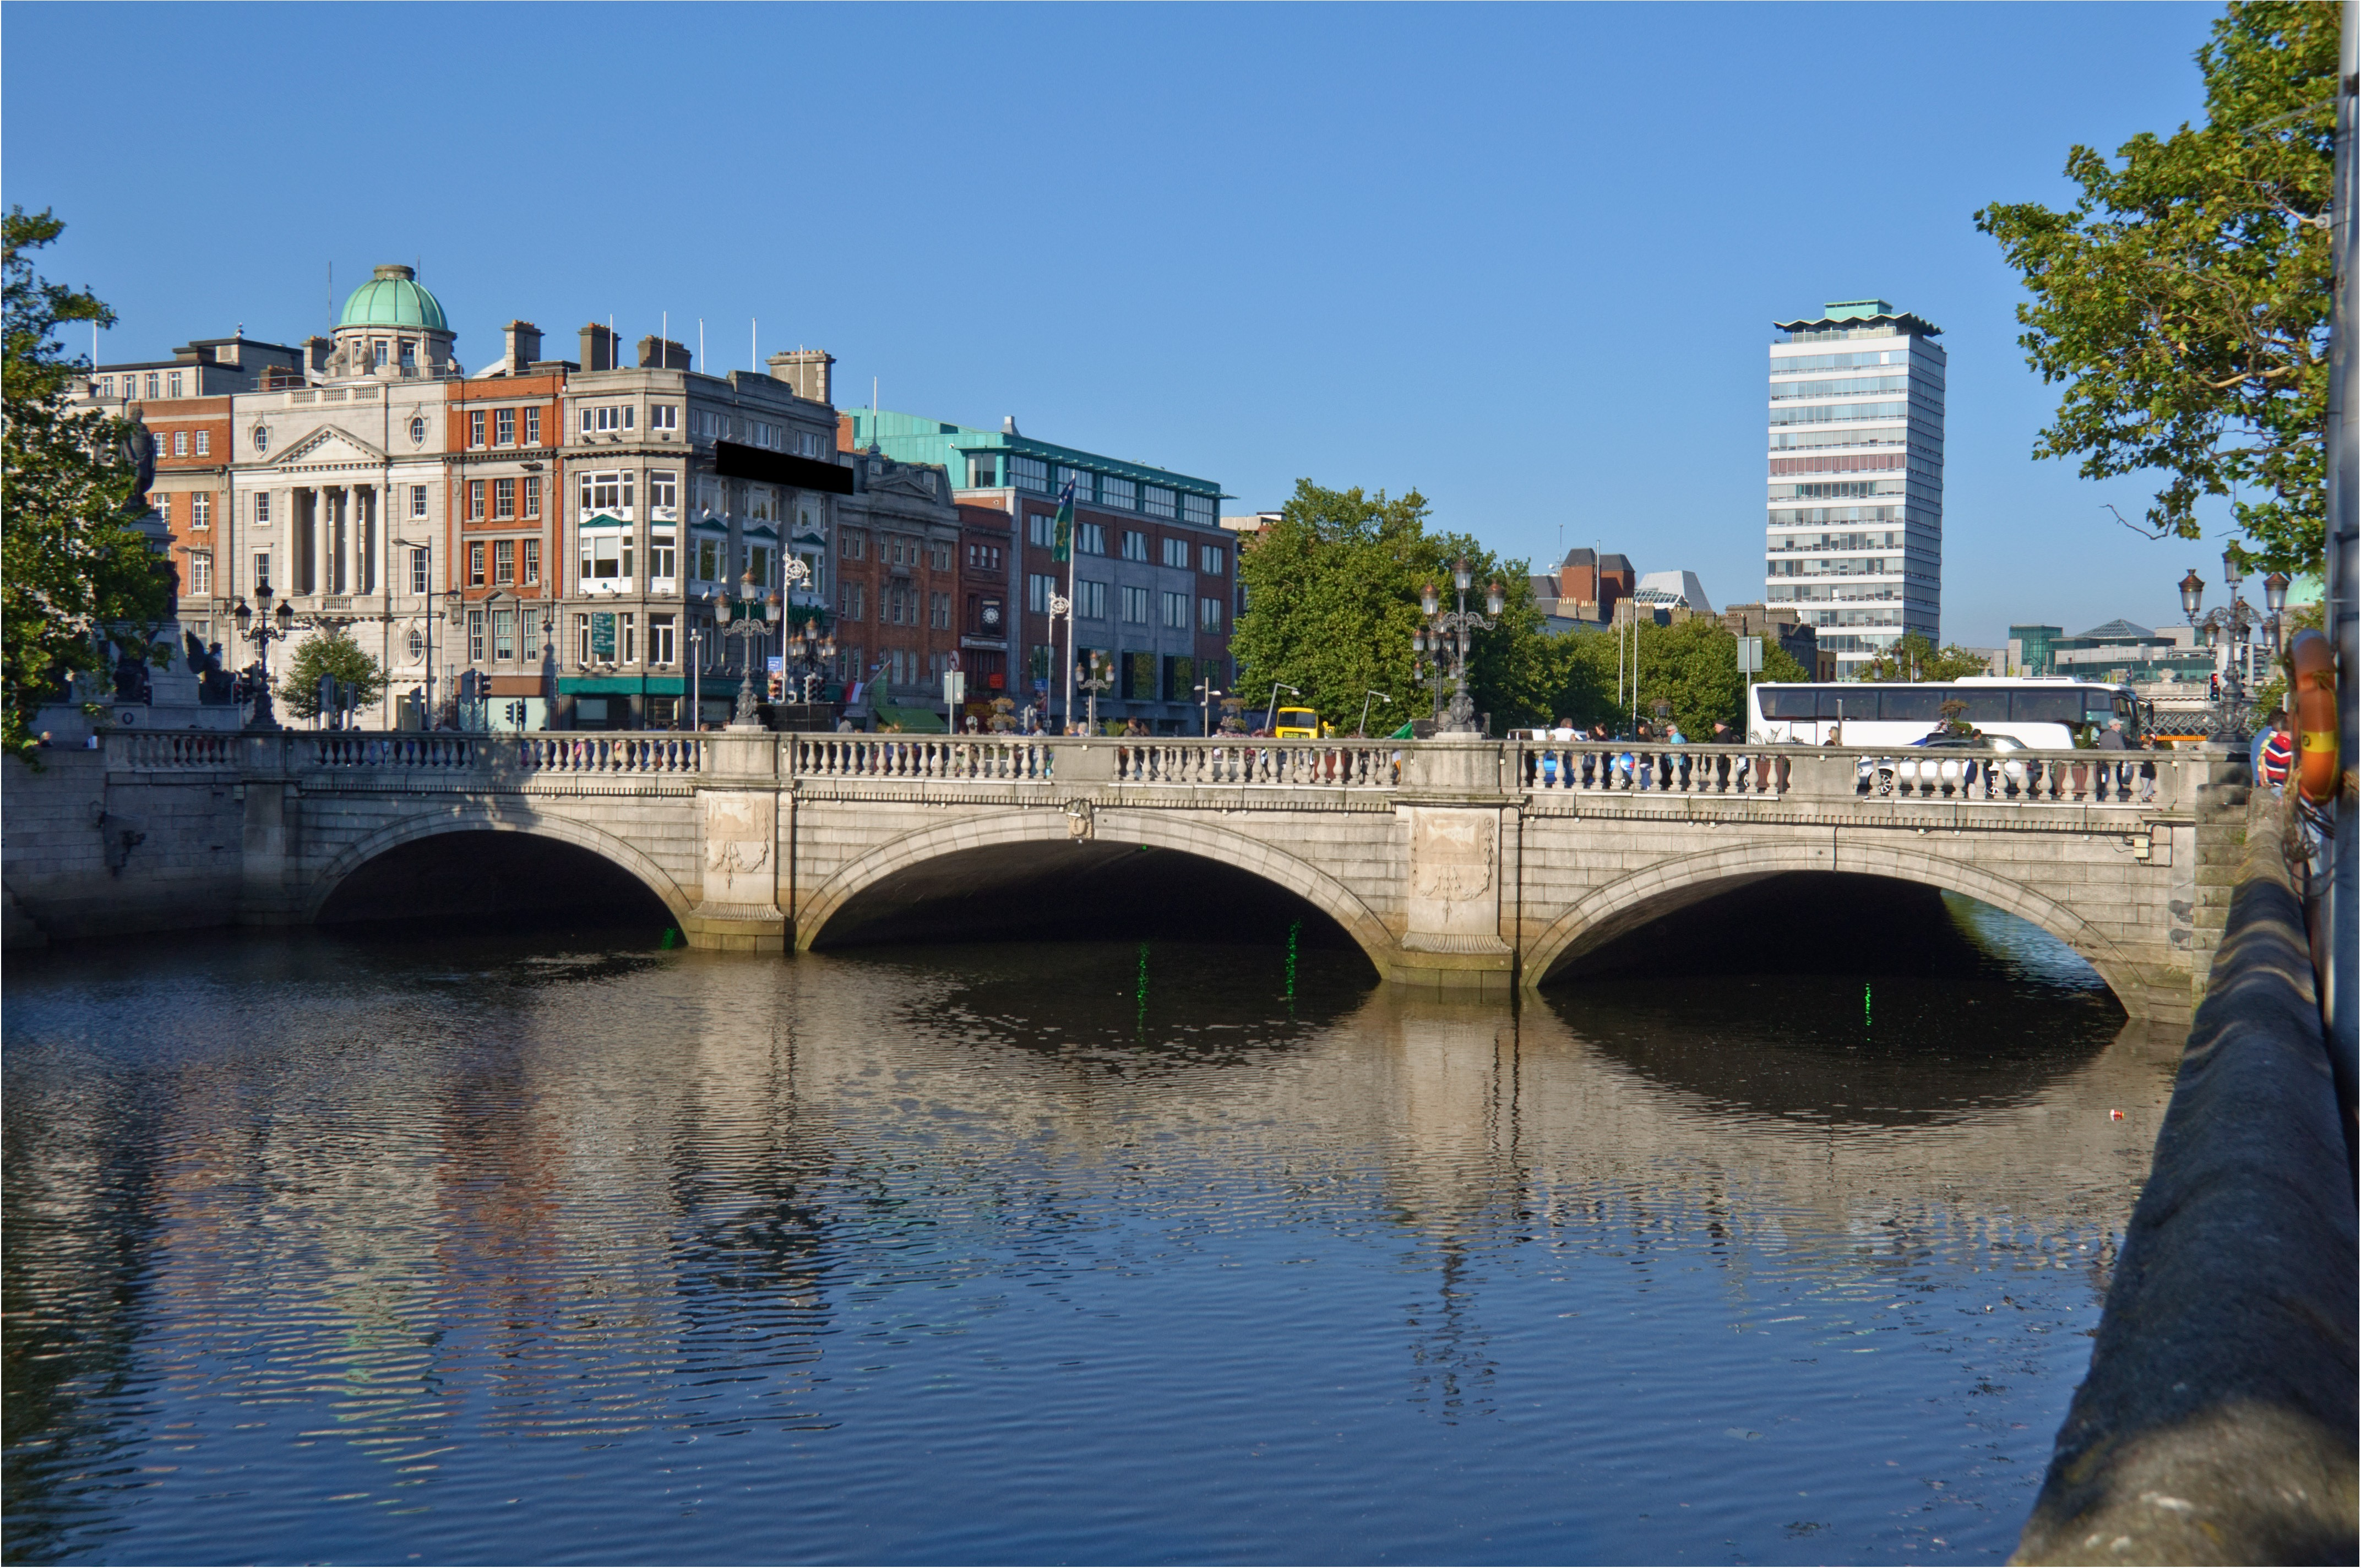 Geography Ireland Level 3 Activity For Kids